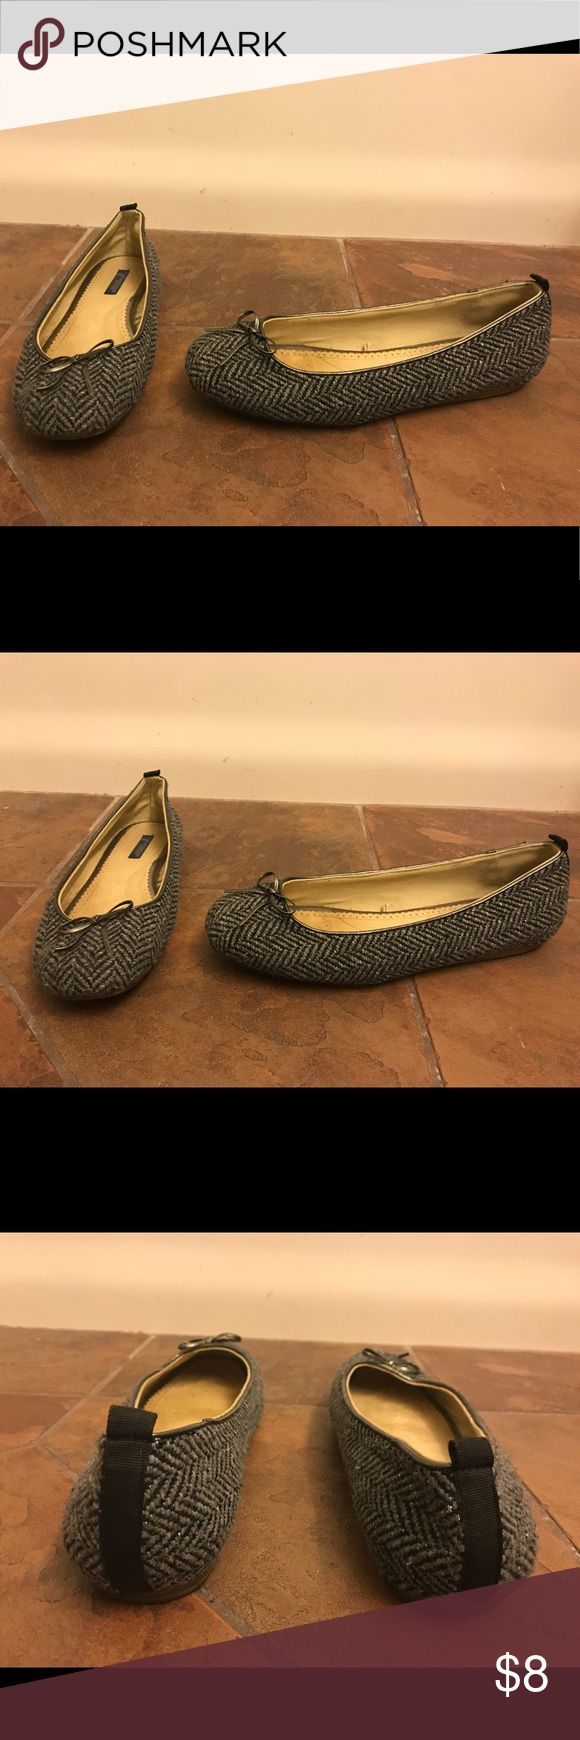 American Eagle Outfitters Tweed Chevron Flats--9 American Eagle Outfitters Tweed Chevron Flats.  Size 9 American Eagle Outfitters Shoes Flats & Loafers